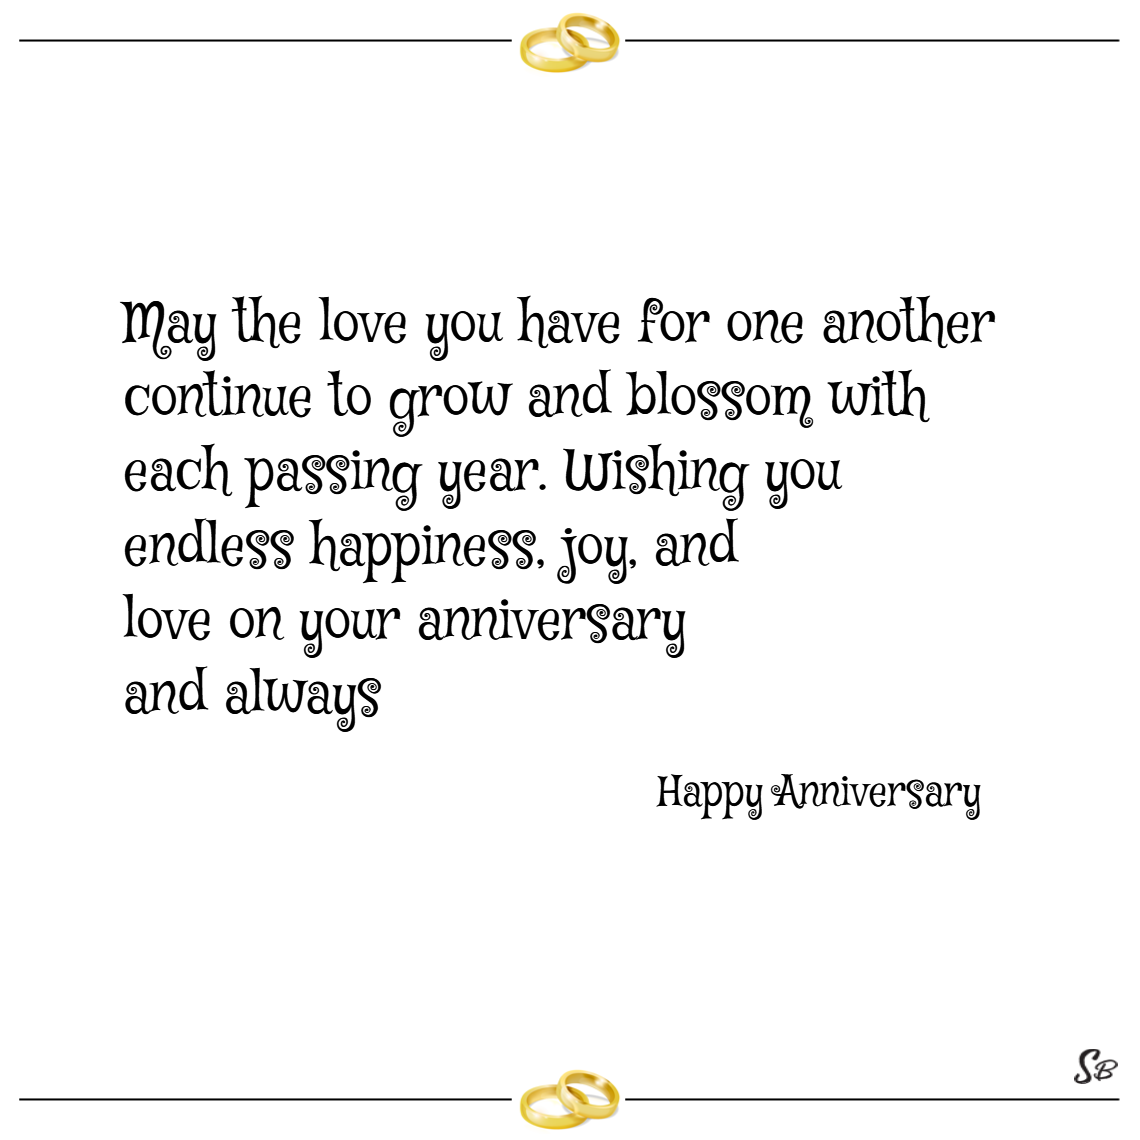 May the love you have for one another continue to grow and blossom with each passing year. wishing you endless happiness, joy, and love on your anniversary and always